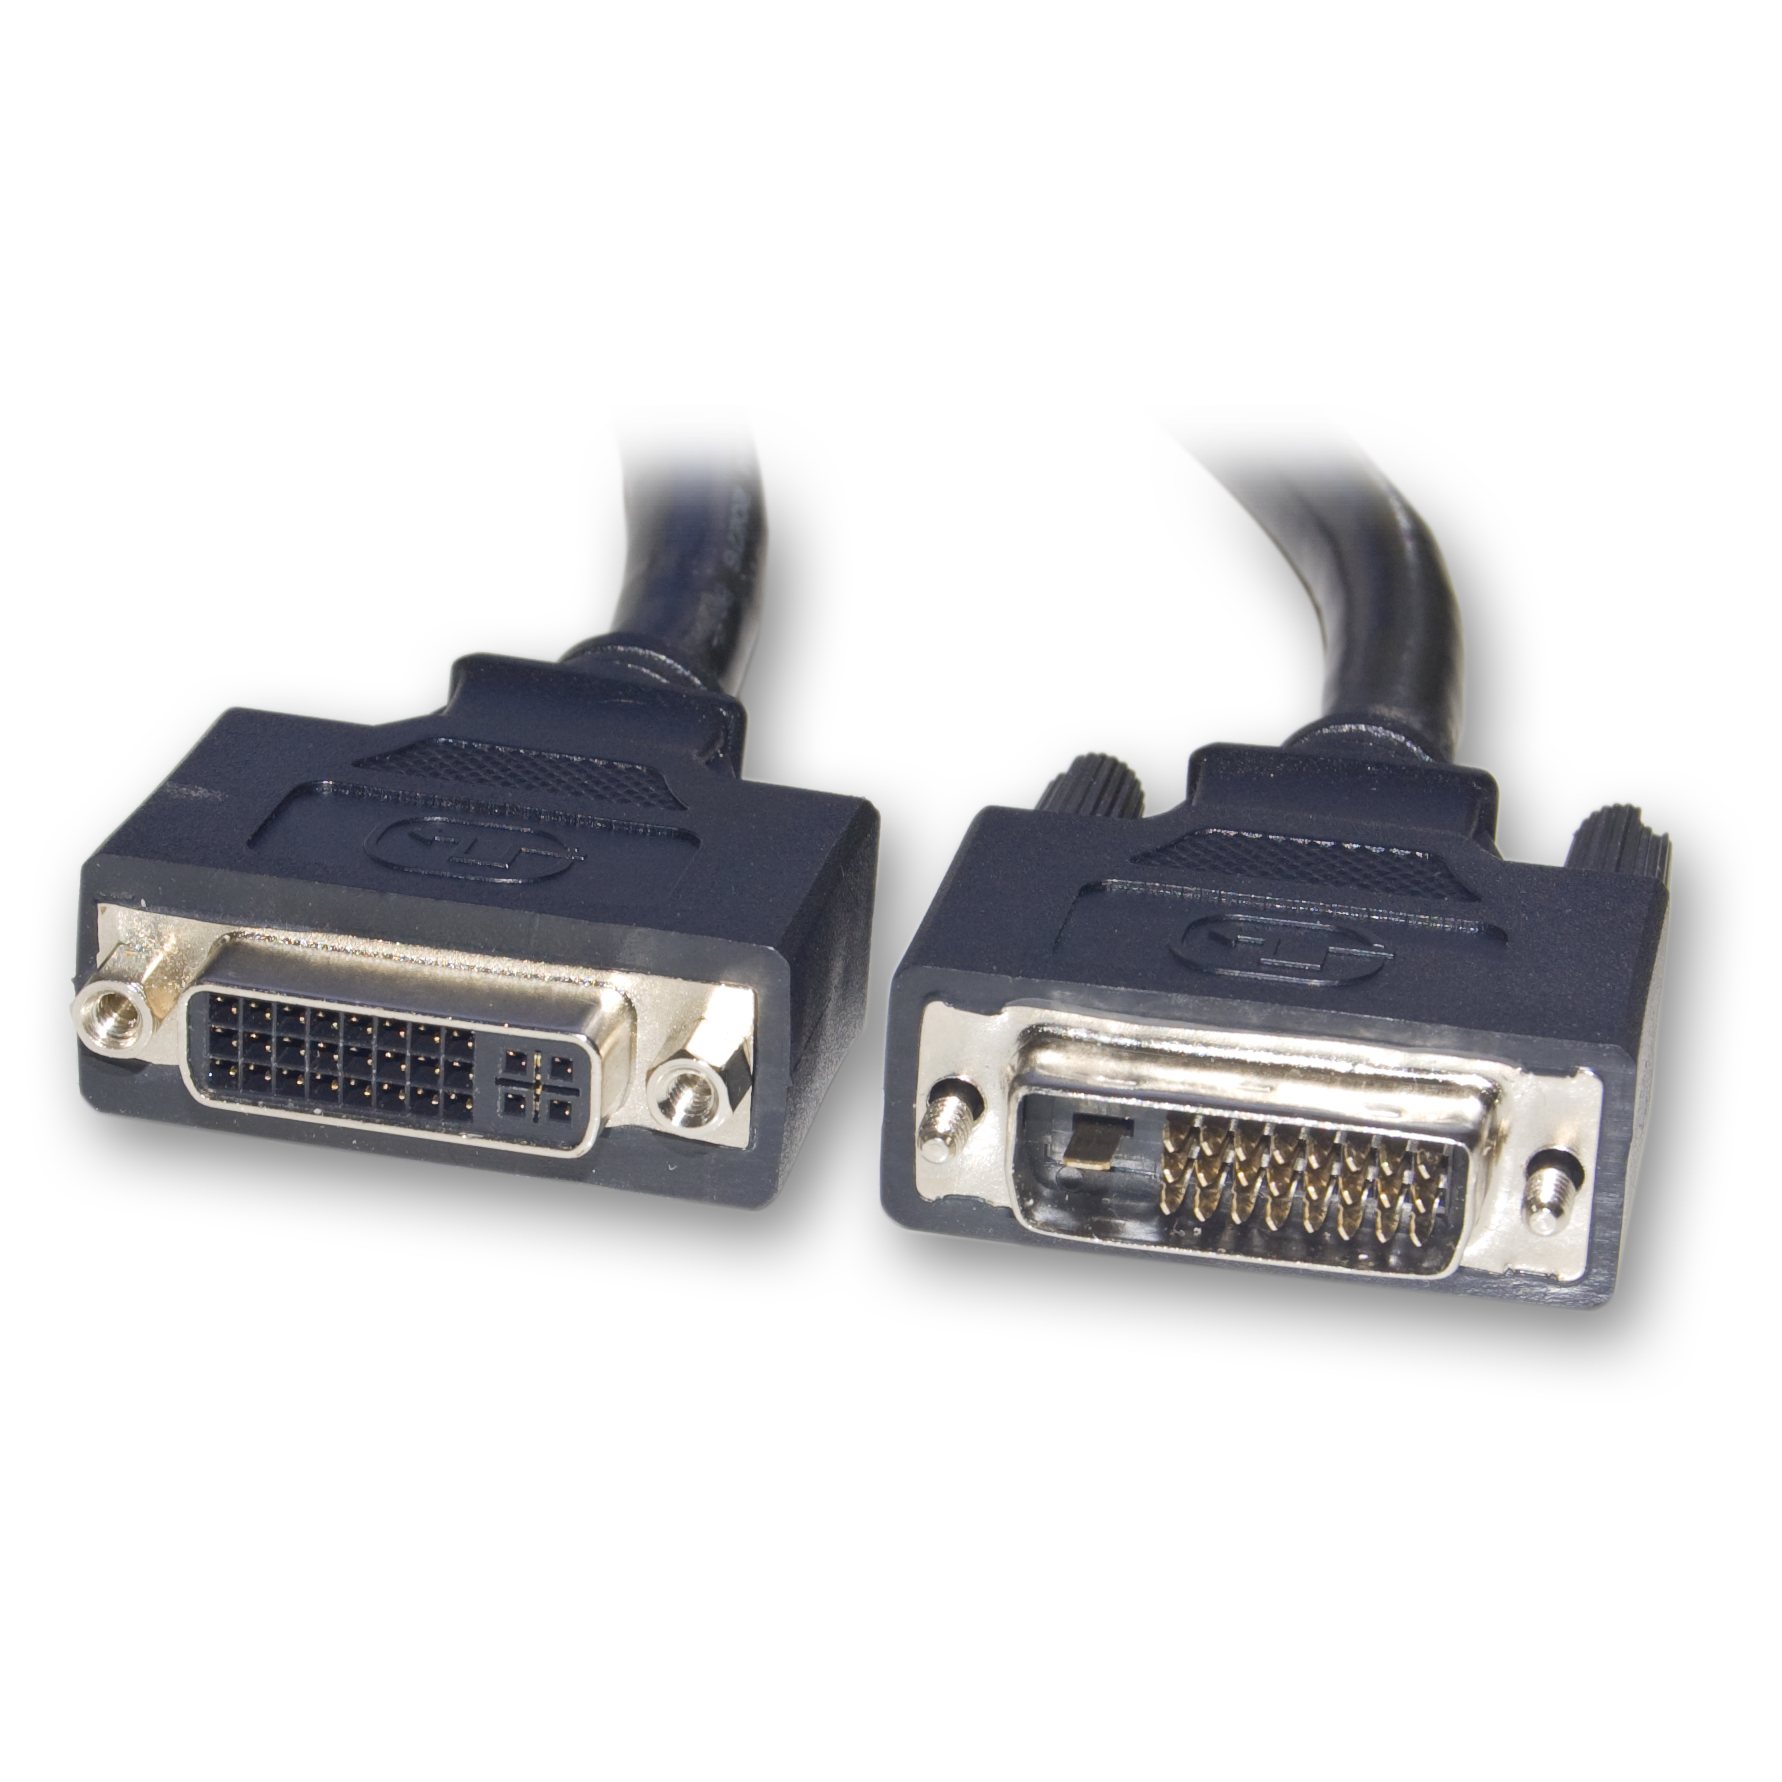 Dvi D Dual Link Extension Cable 5m